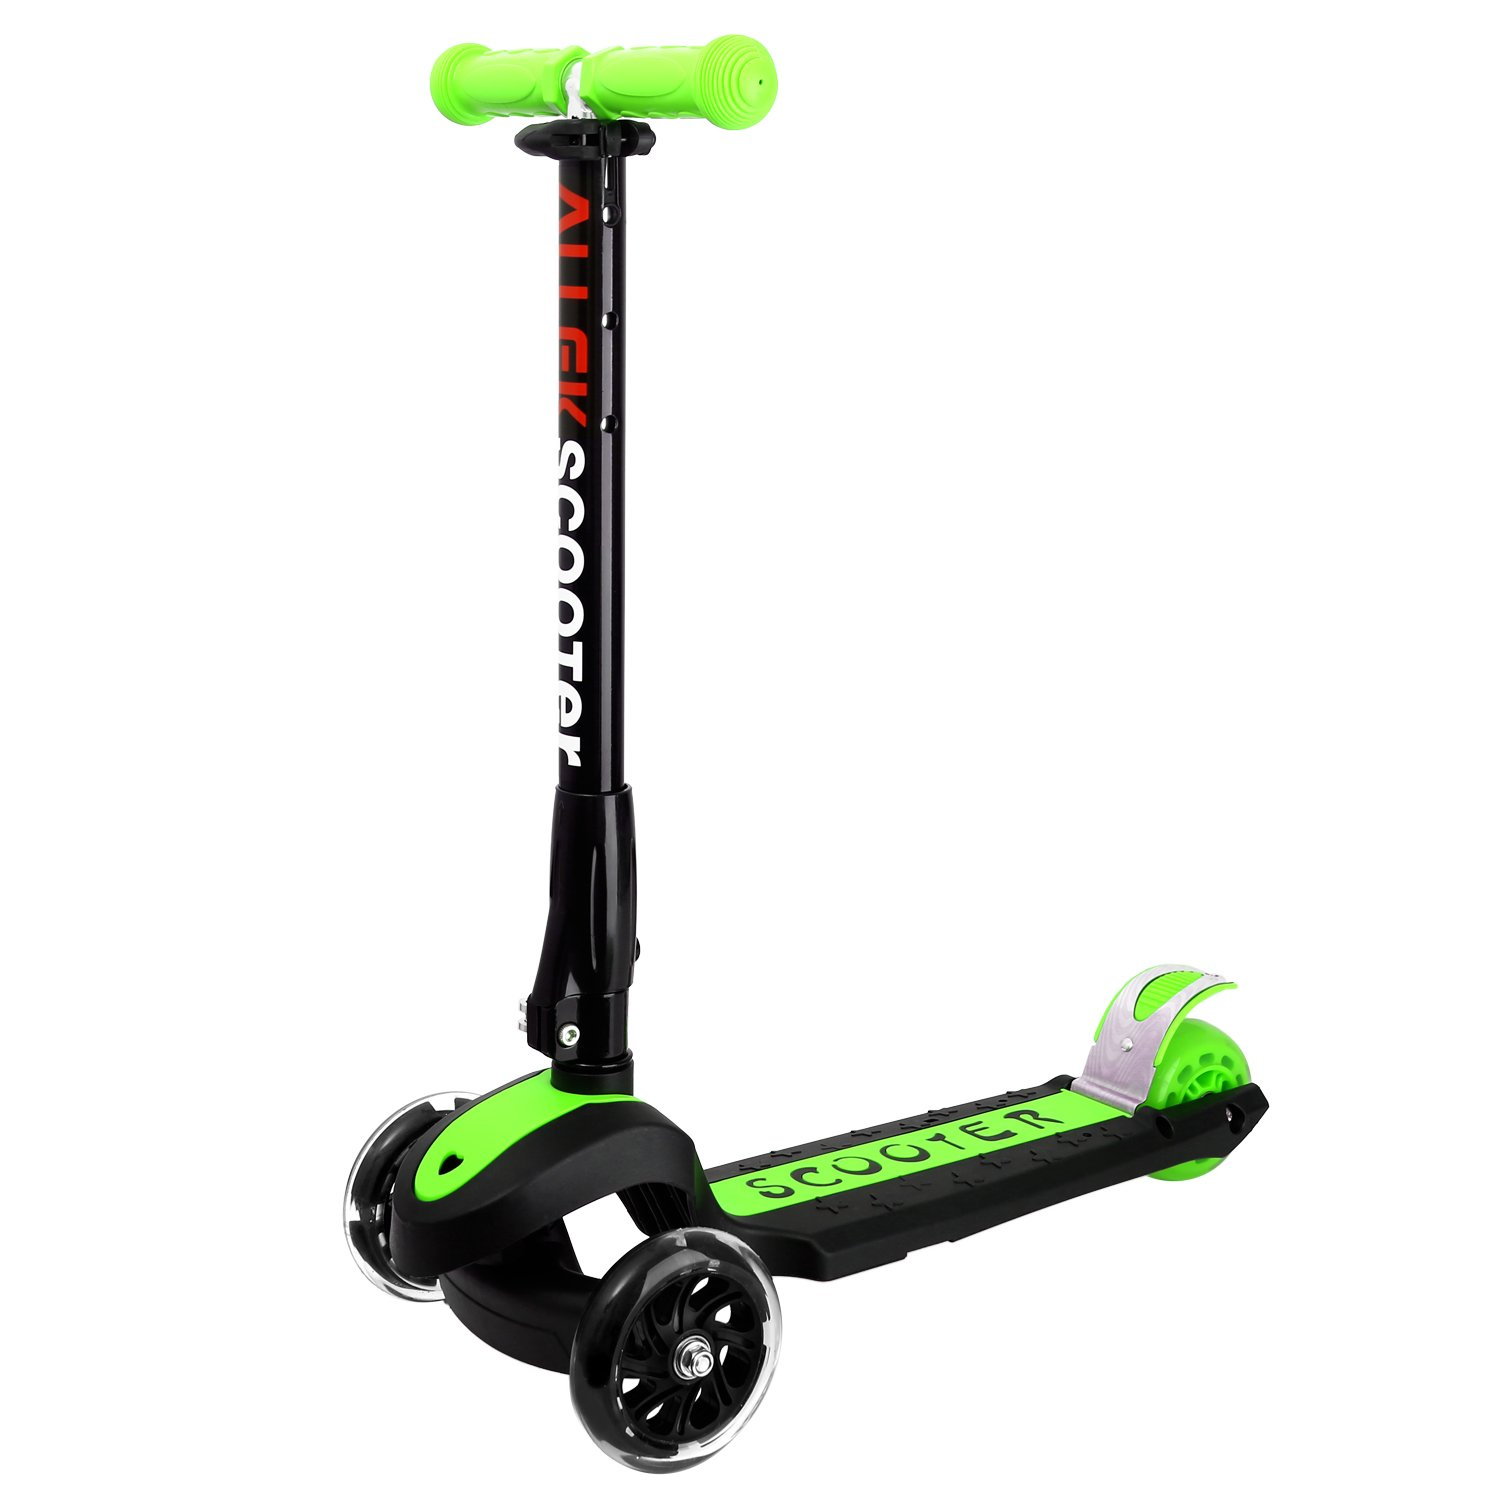 Allek 3 Wheel Scooter, Lean to Steer Deluxe3 Flashing UpWheel Adjustable Height Foldable Birthday Gift for Children from 3 to 17 Year-Old